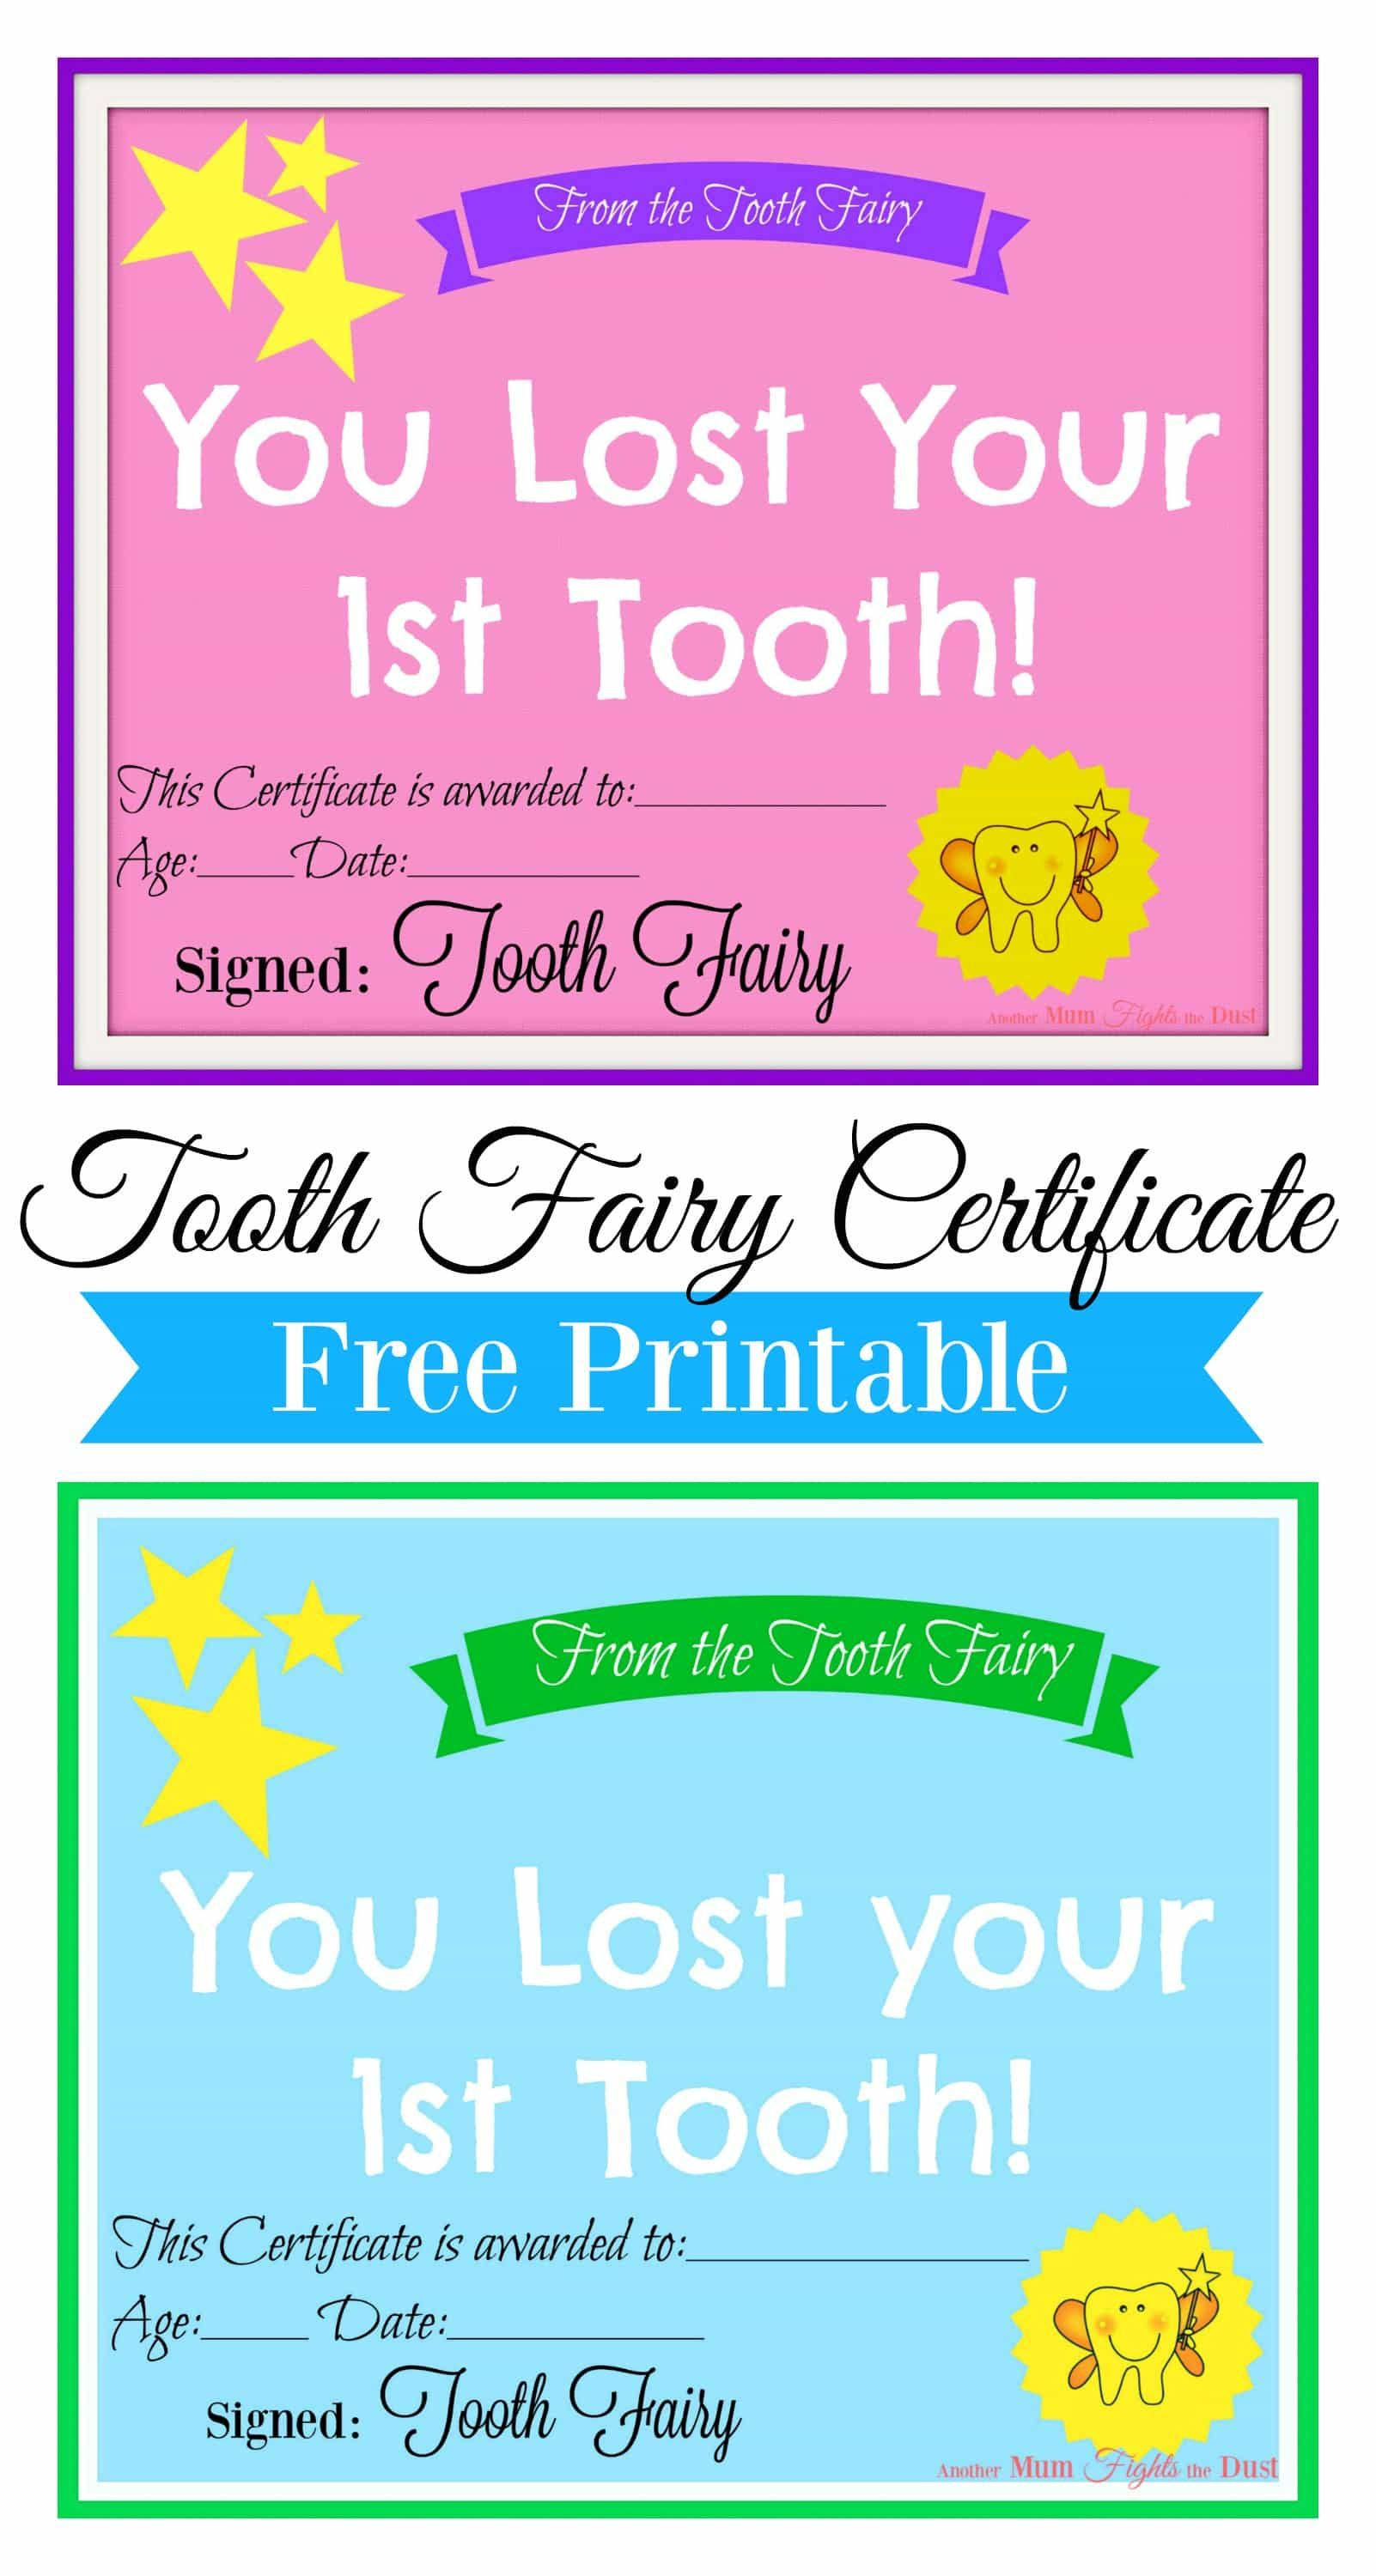 image about Free Printable Tooth Fairy Certificate titled Cost-free Printable Teeth Fairy Certification Teeth Fairy Designs